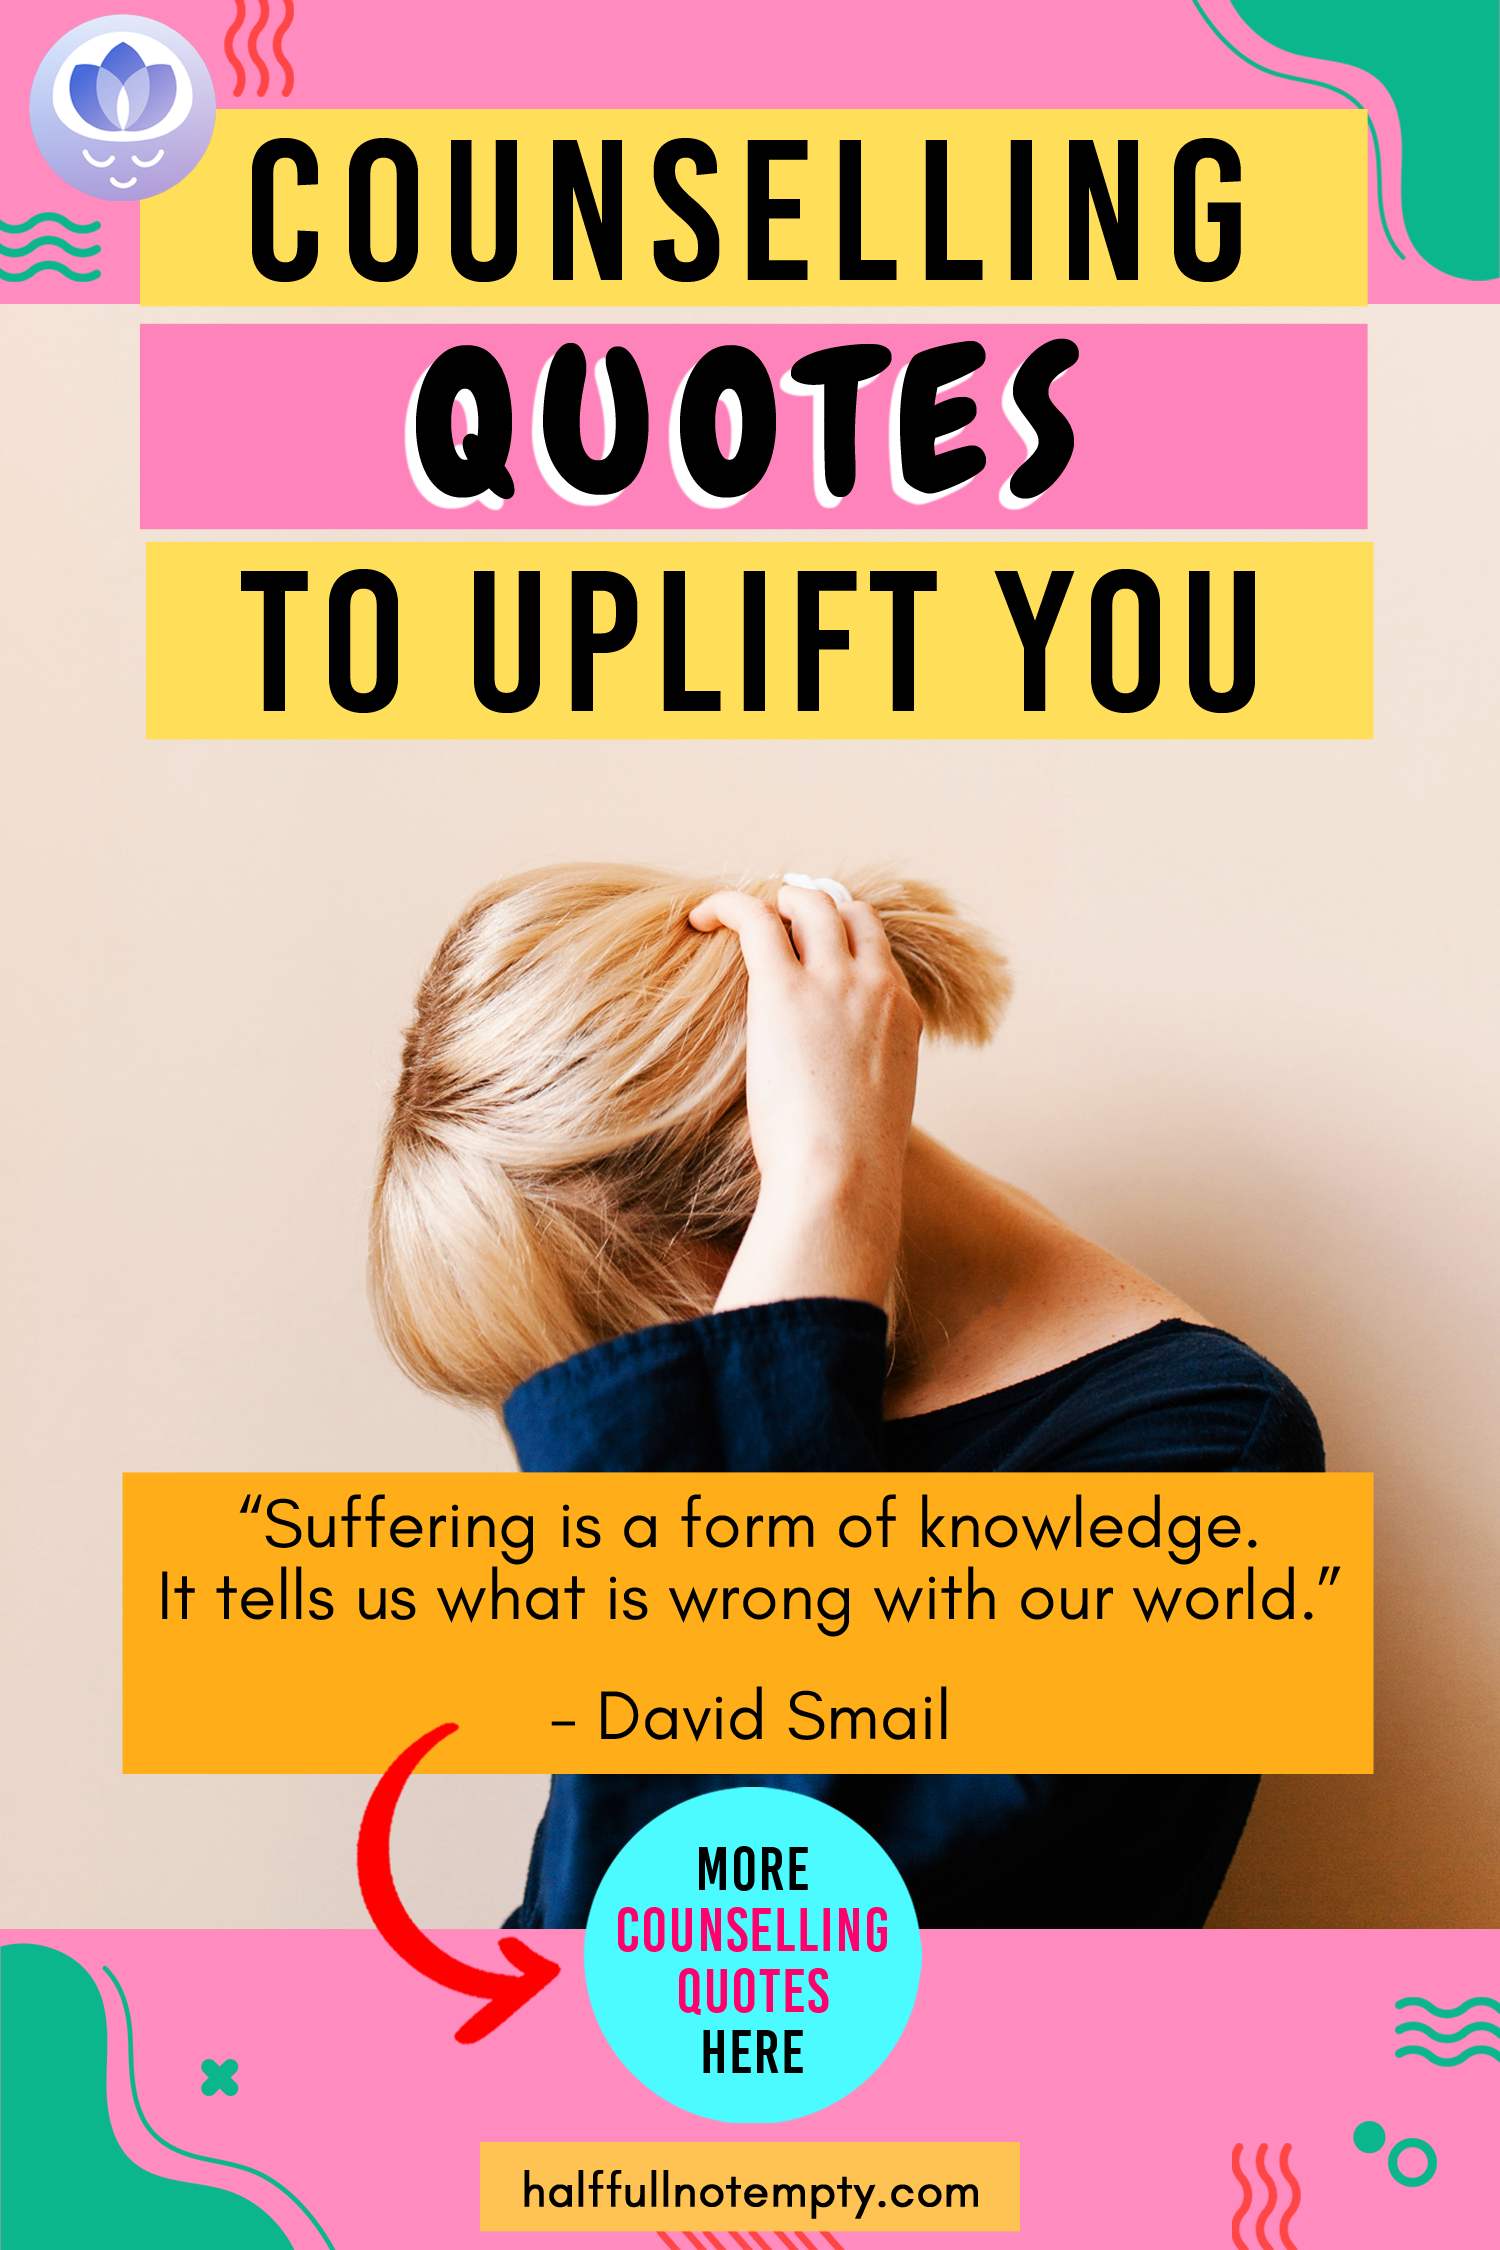 9 Counseling Quotes To Uplift You In